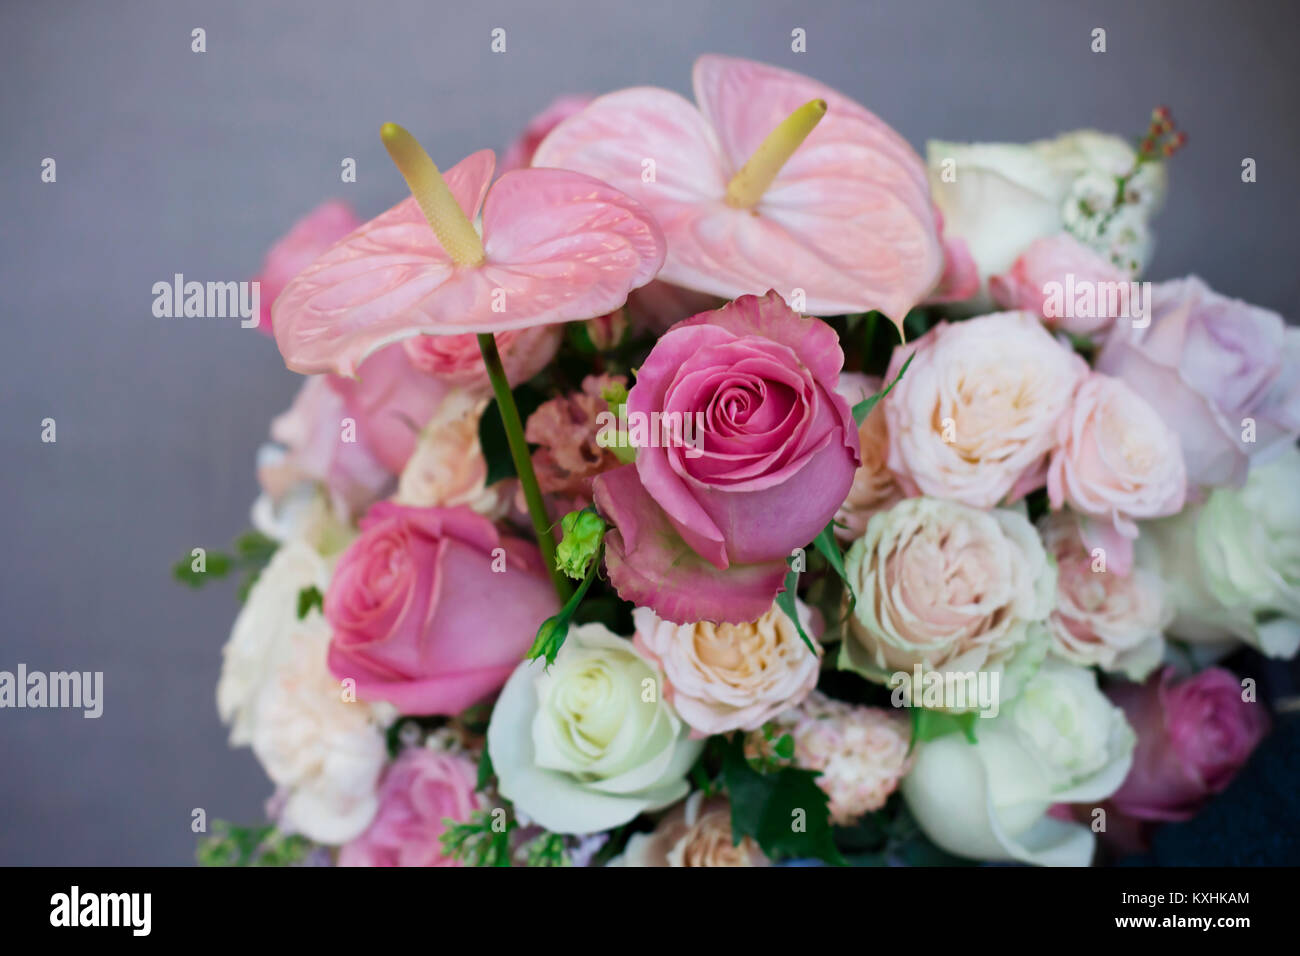 Different beautiful flowers in basket stock photos different the beautiful bouquet of different roses in white box in female hands on gray background izmirmasajfo